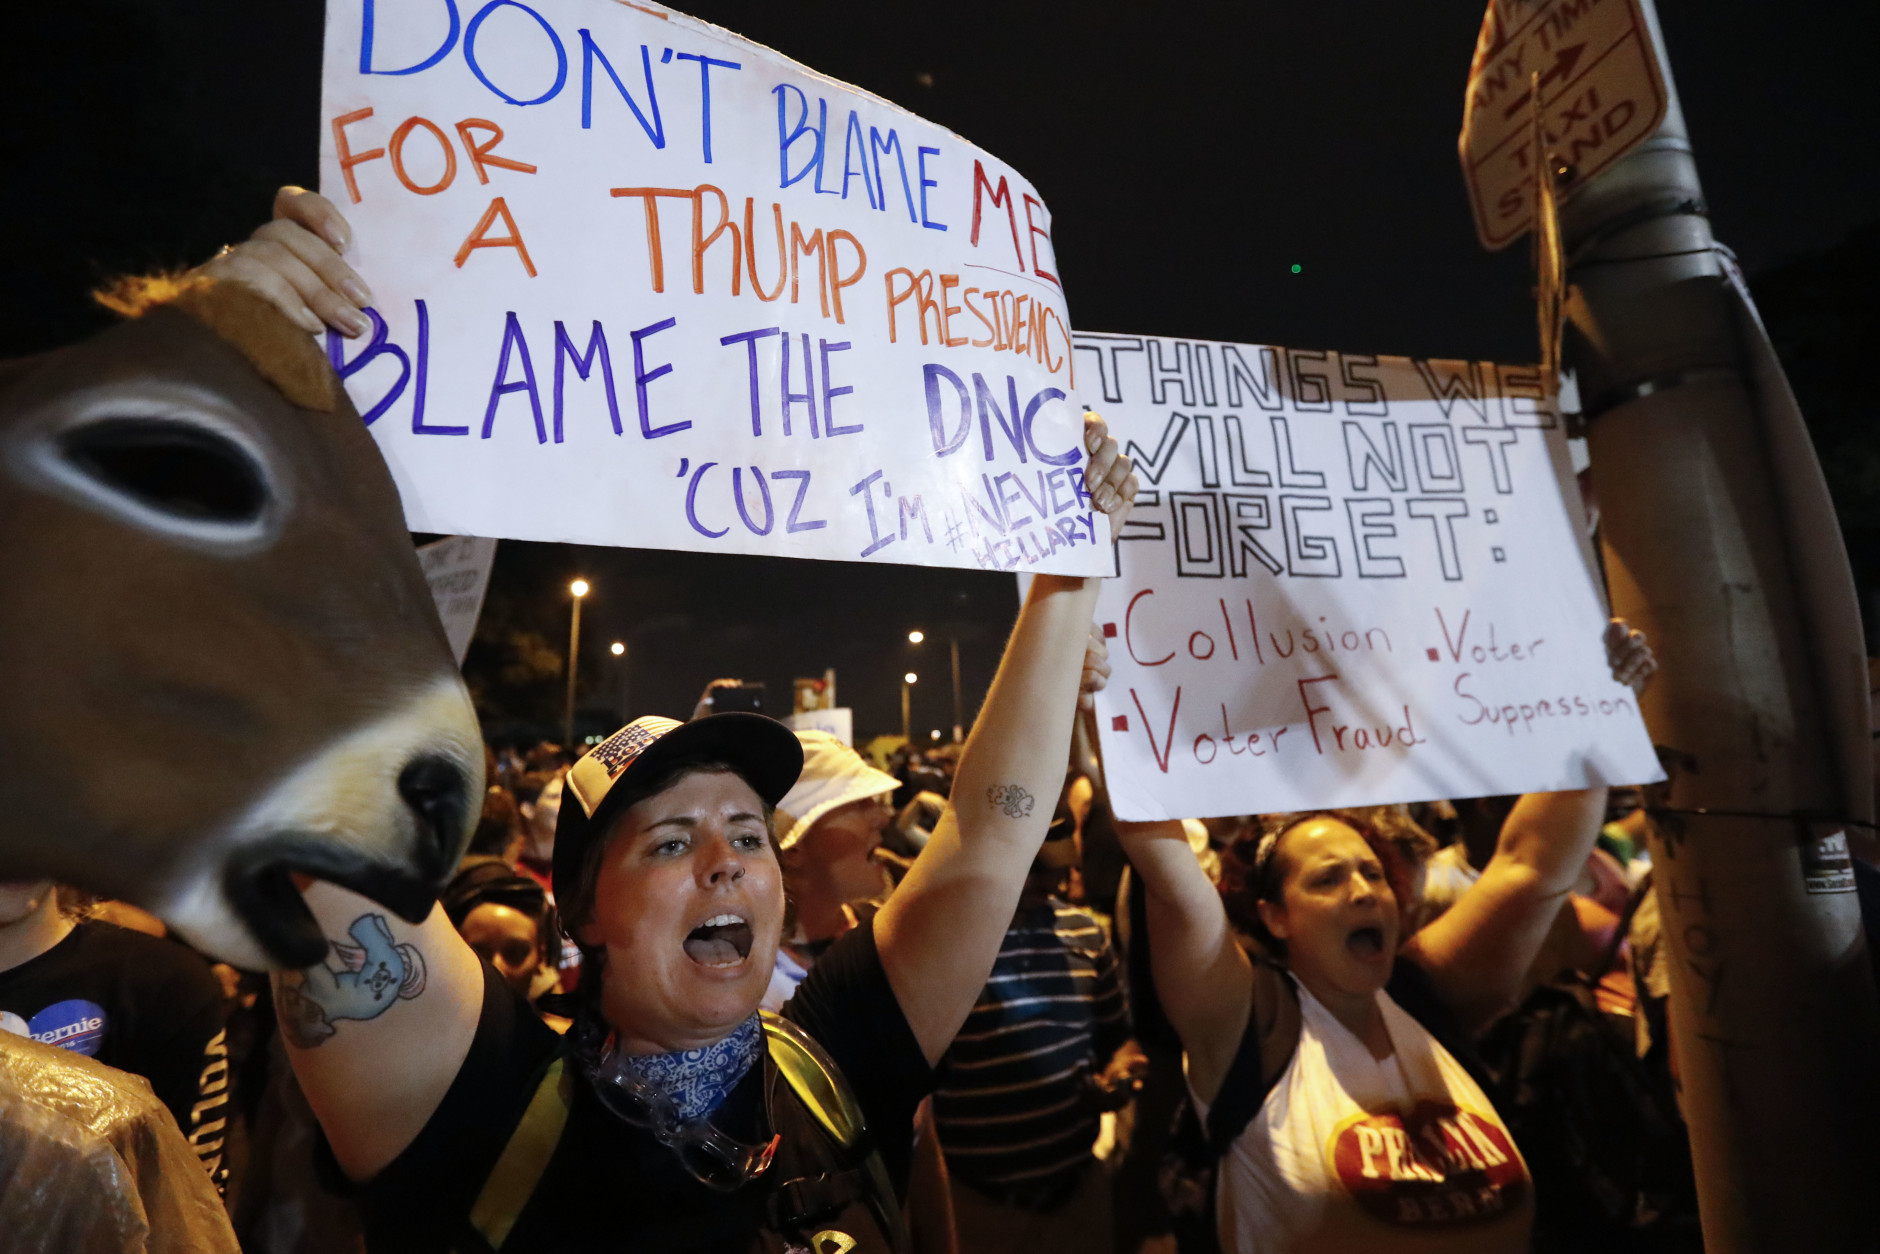 Demonstrators yell during protest at Franklin Delano Roosevelt park in Philadelphia, Thursday, July 28, 2016, during the final day of the Democratic National Convention. (AP Photo/Alex Brandon)